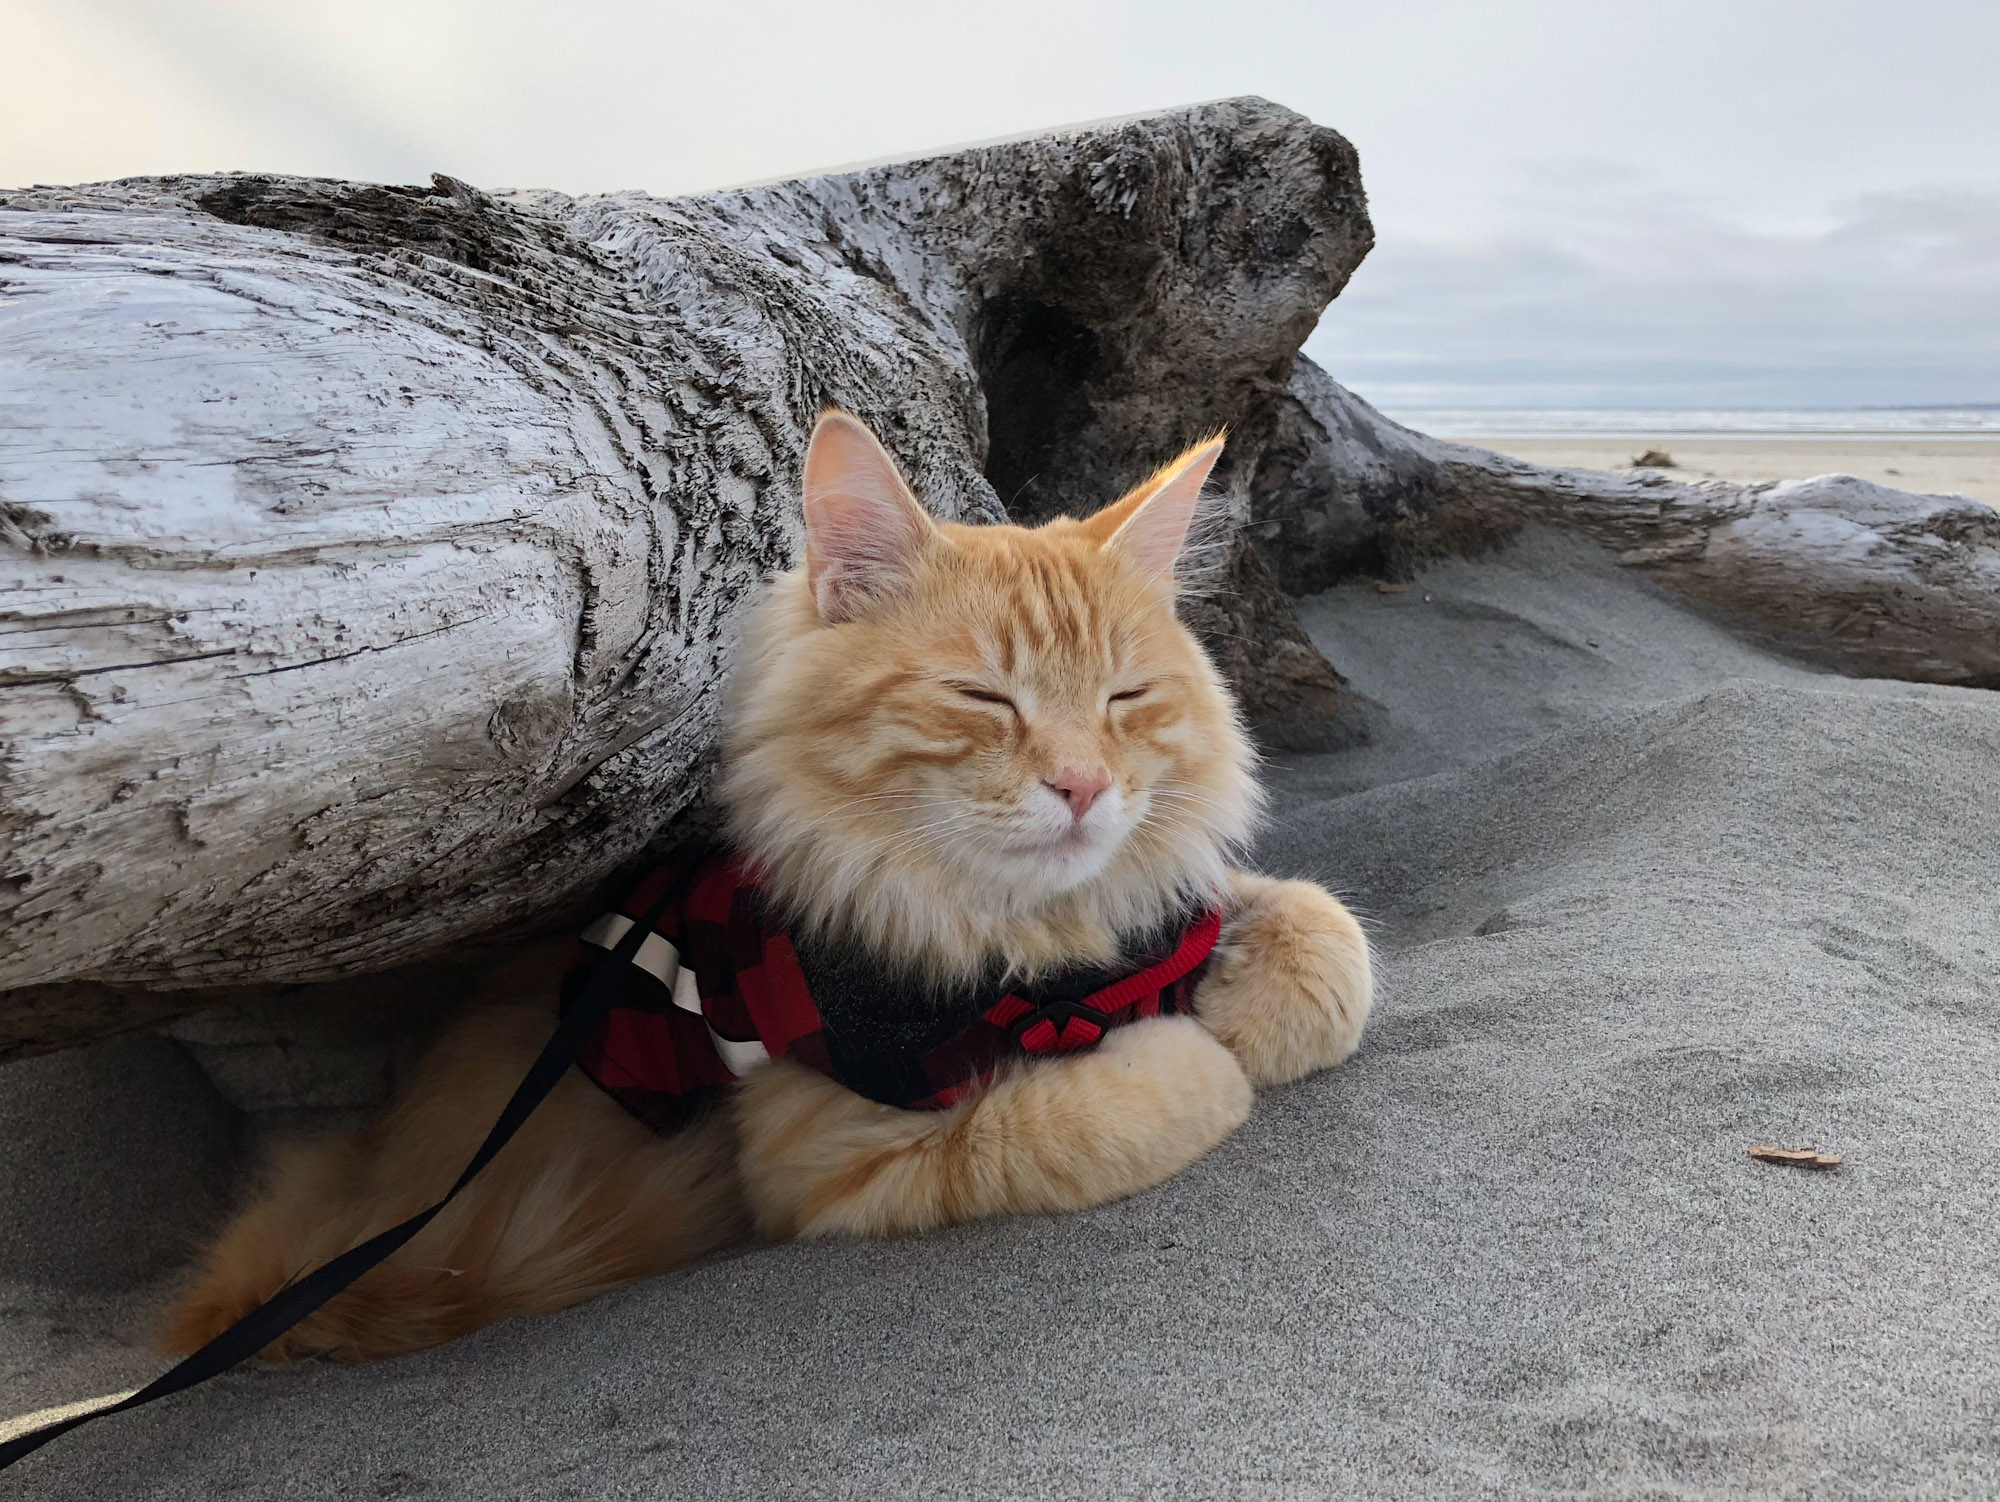 Leon adventure cat naps on beach